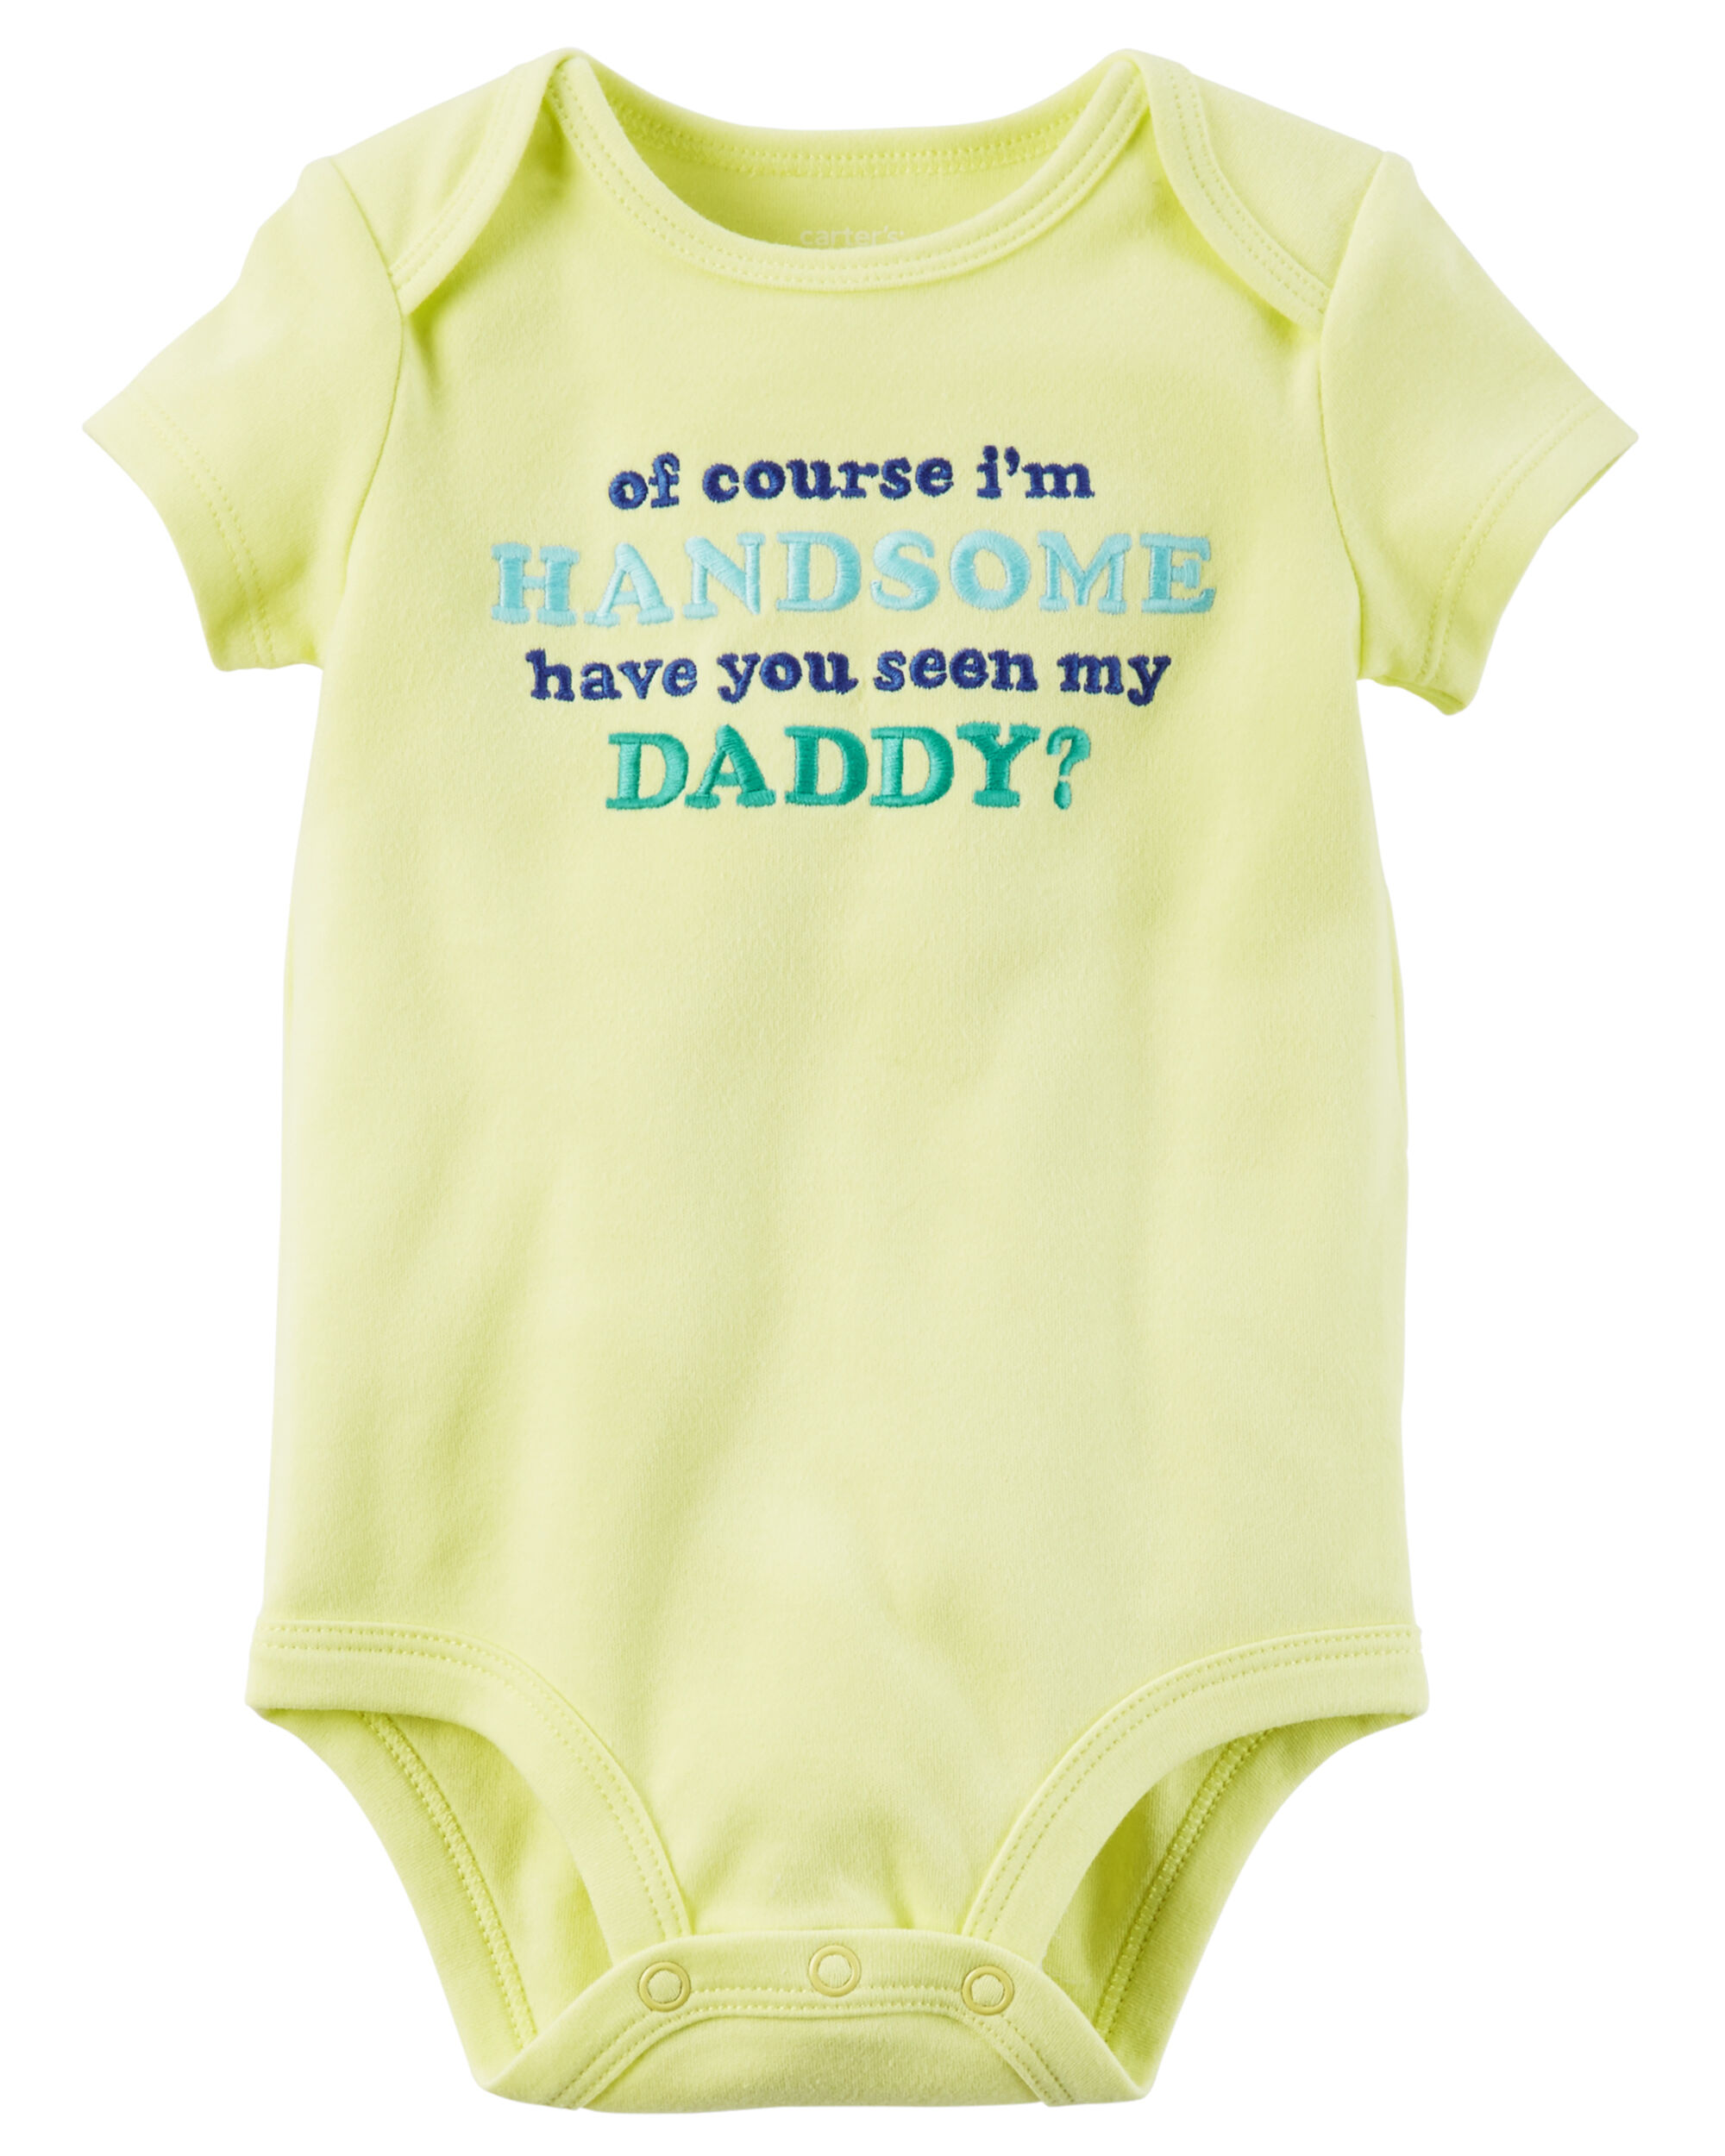 Handsome Like Daddy Baby Vest Baby Grow 100/% Cotton Boys Bodys